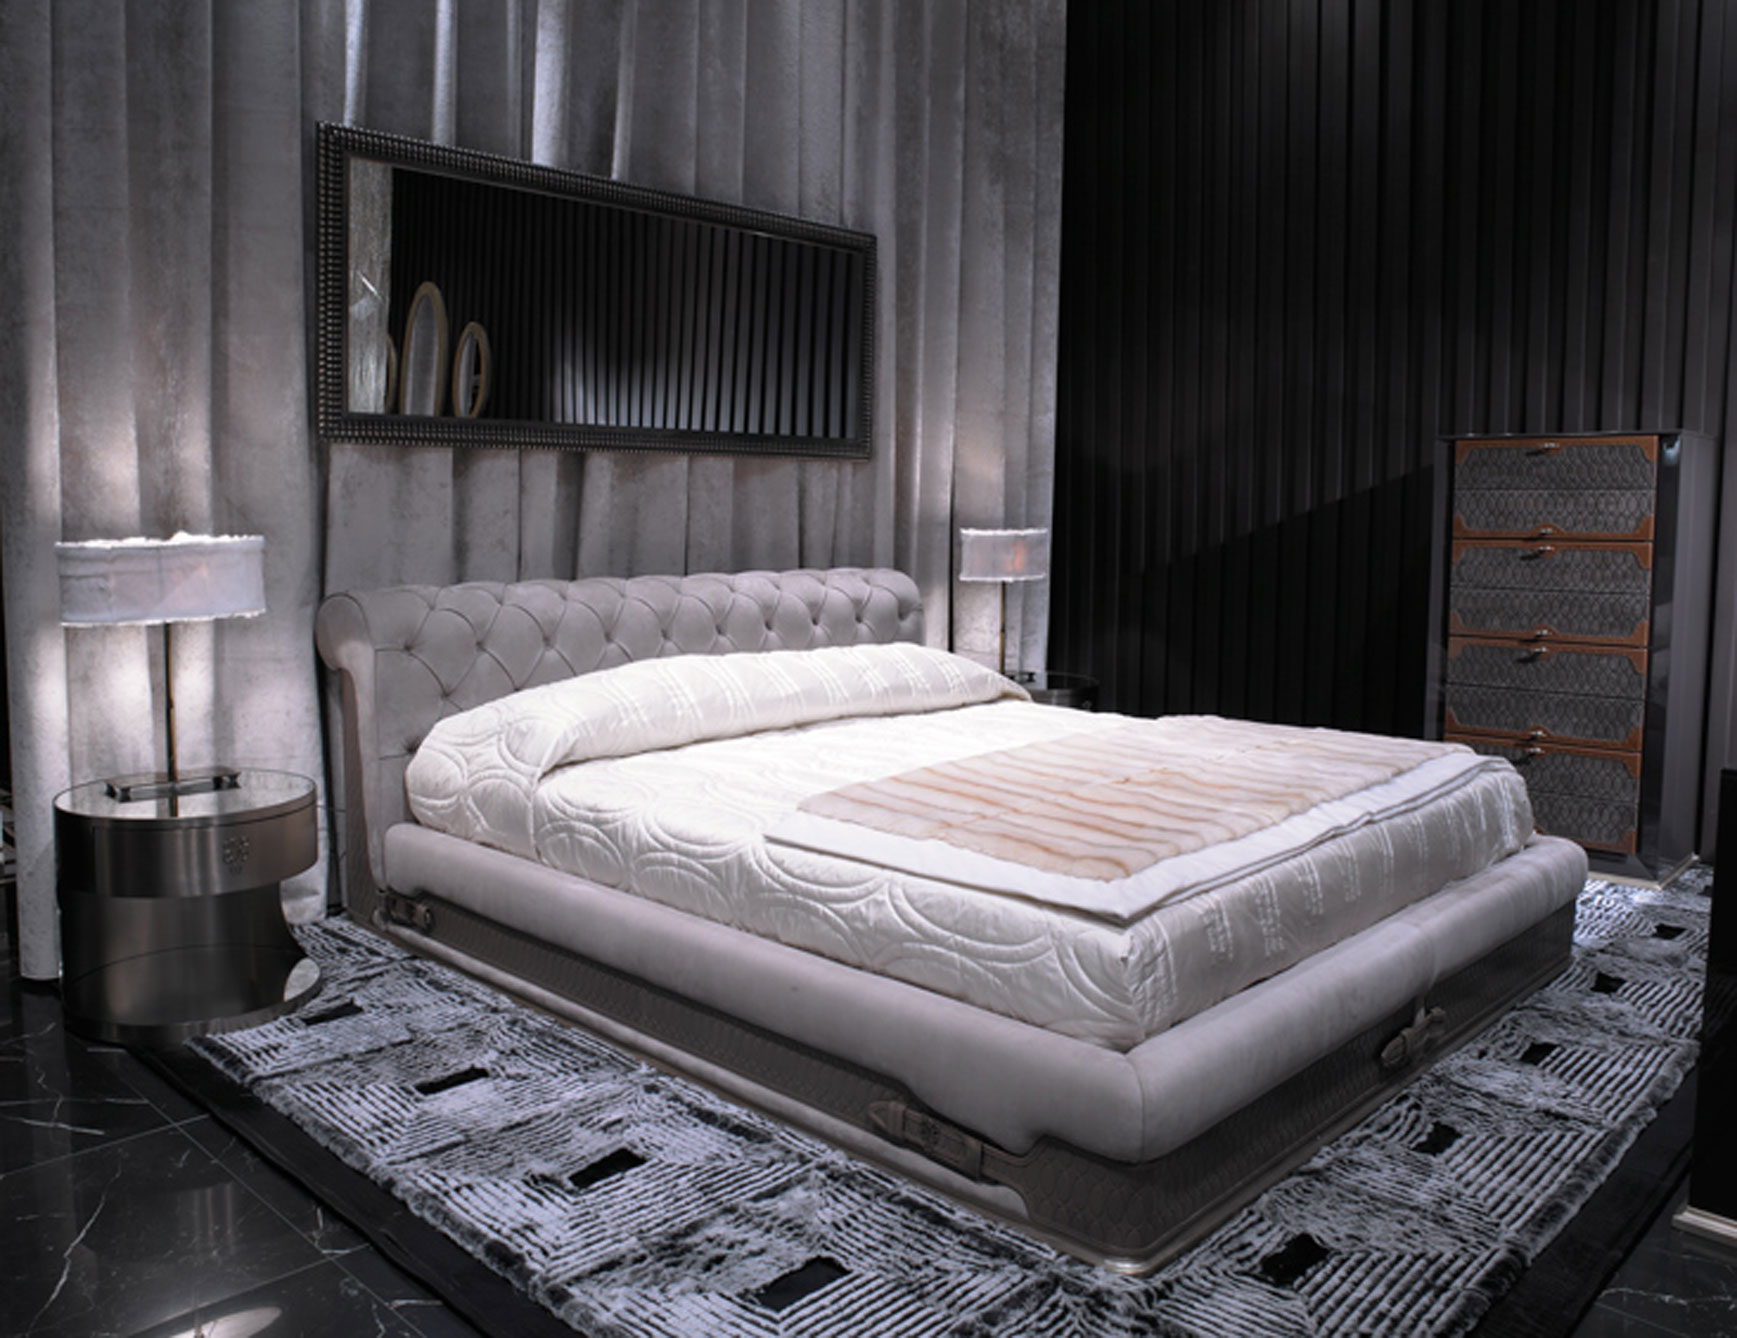 Collection luxury beds beds. ♥ bwplbwr